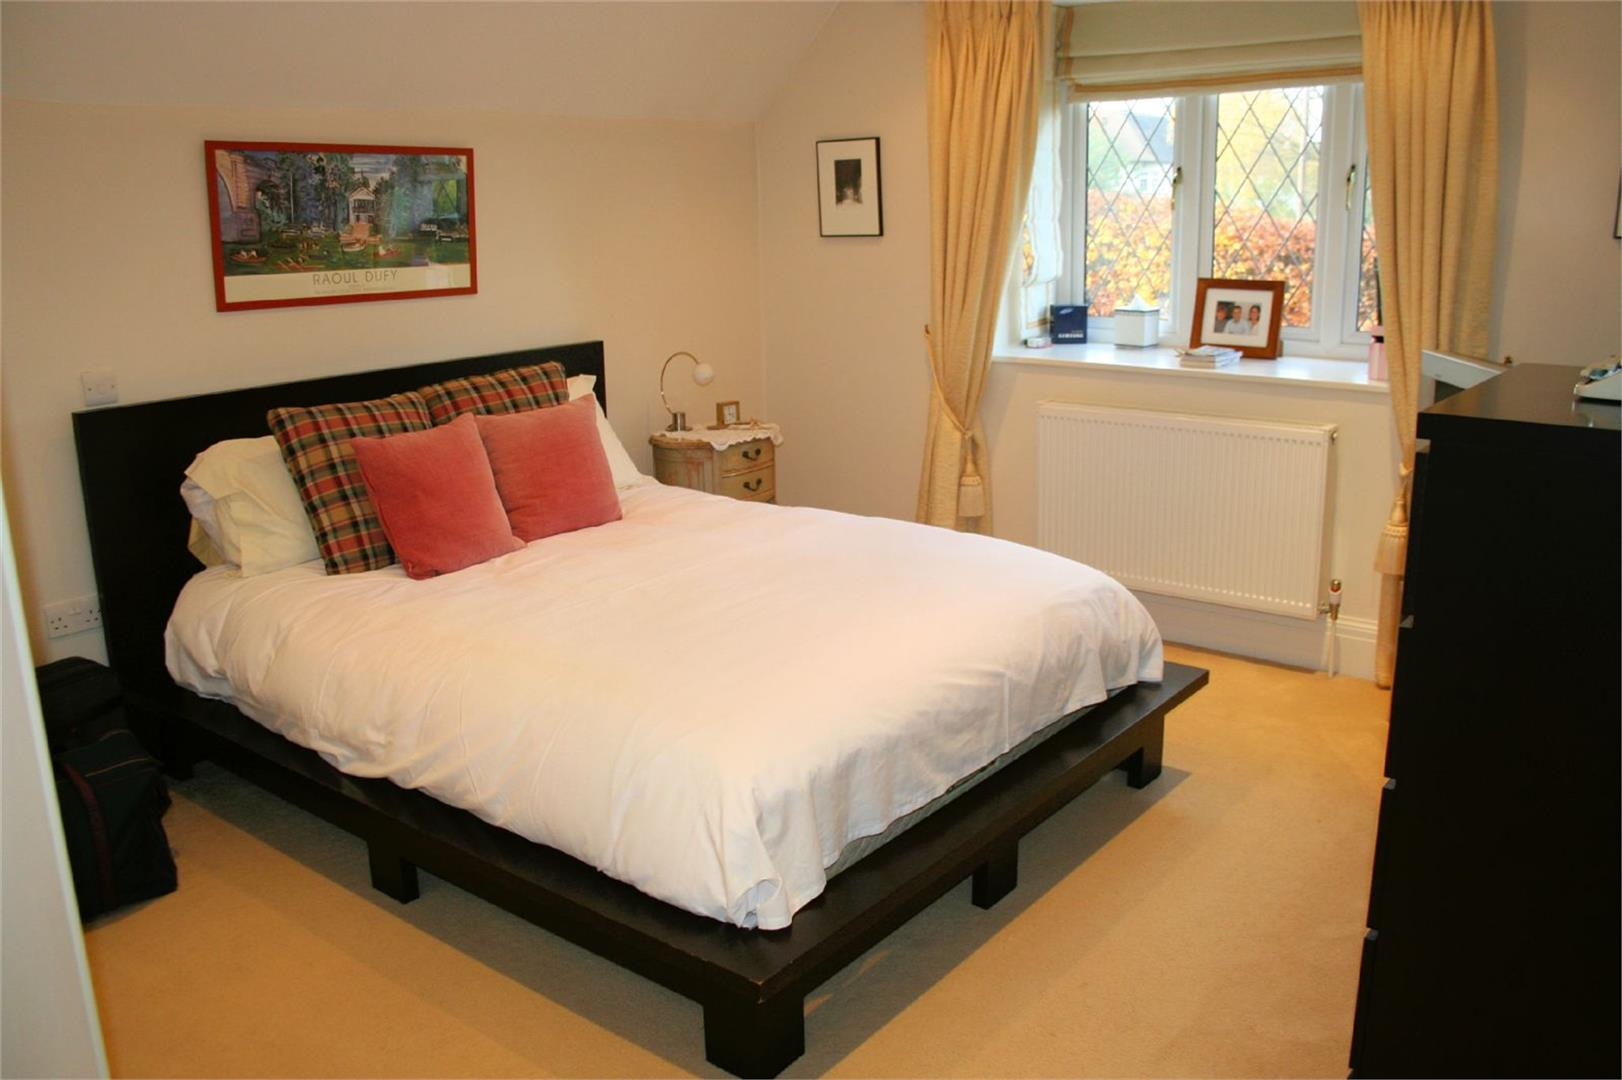 5 bed to rent - (Property Image 6)